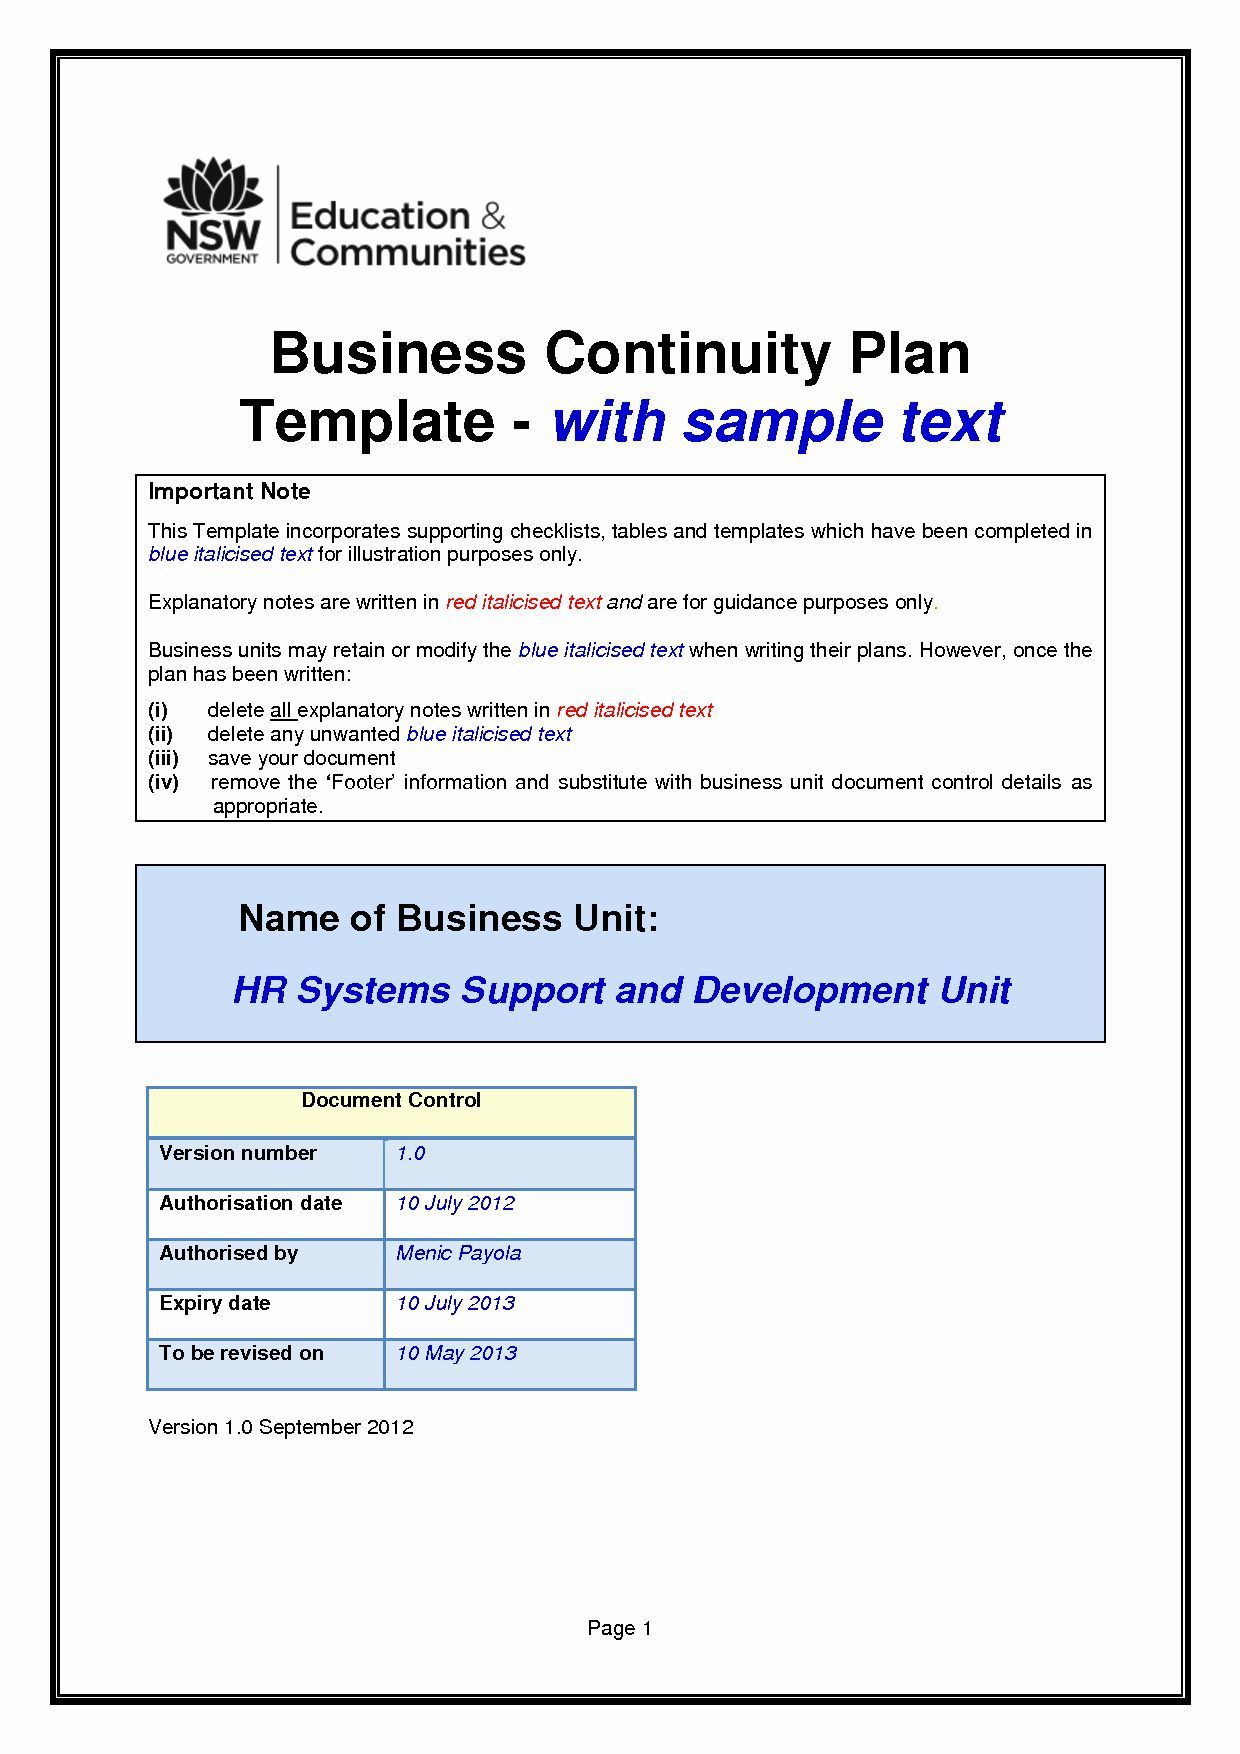 001 Unforgettable Simple Busines Continuity Plan Template Photo  Australia Sample For Small Businesse Basic ExampleFull